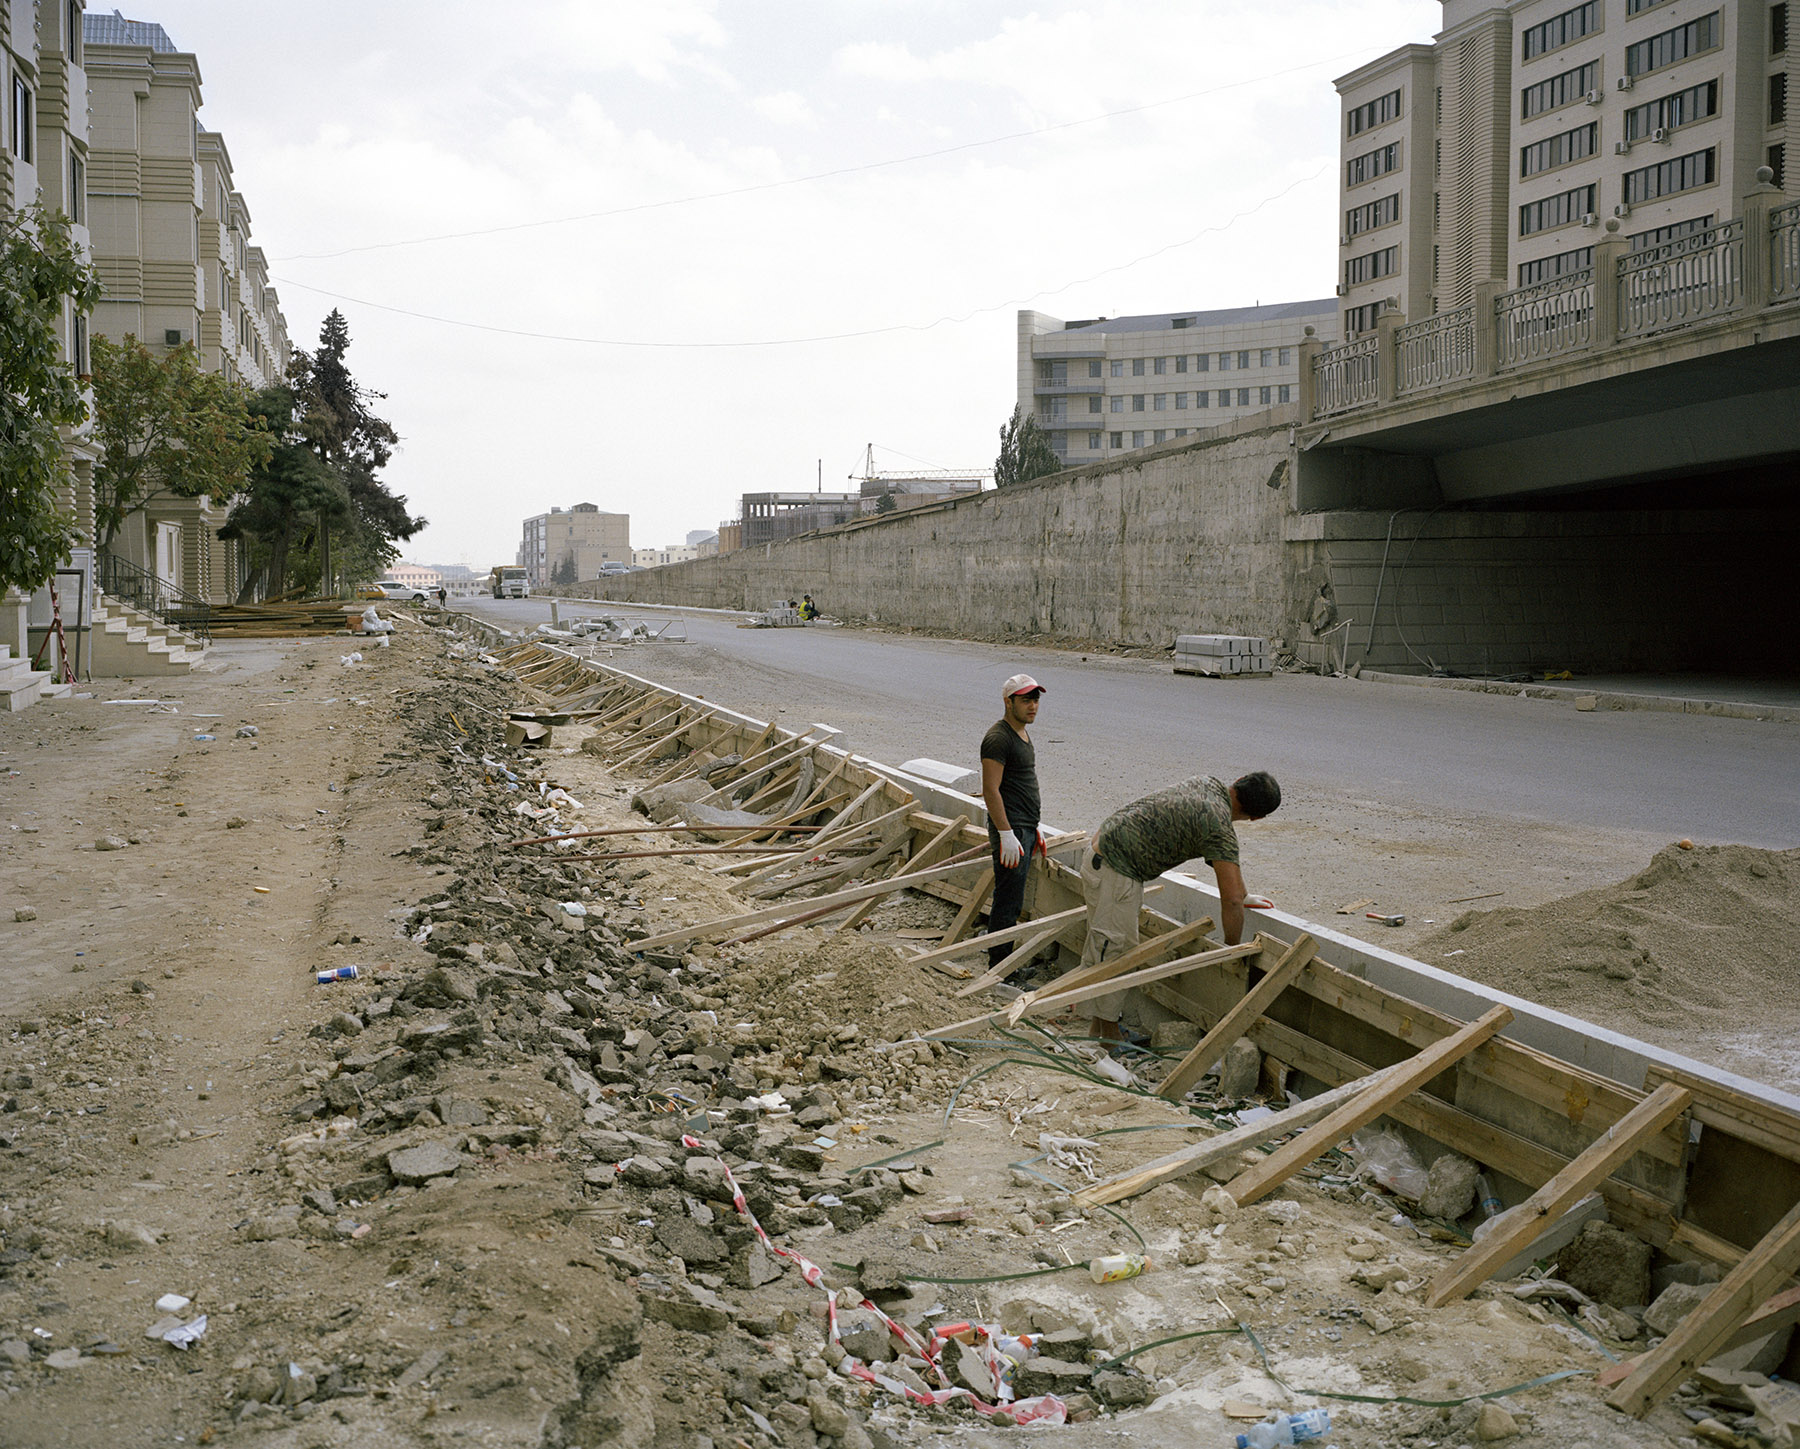 2014: Labourers at work building a road connecting Baku to Heydar Aliyev International Airport.